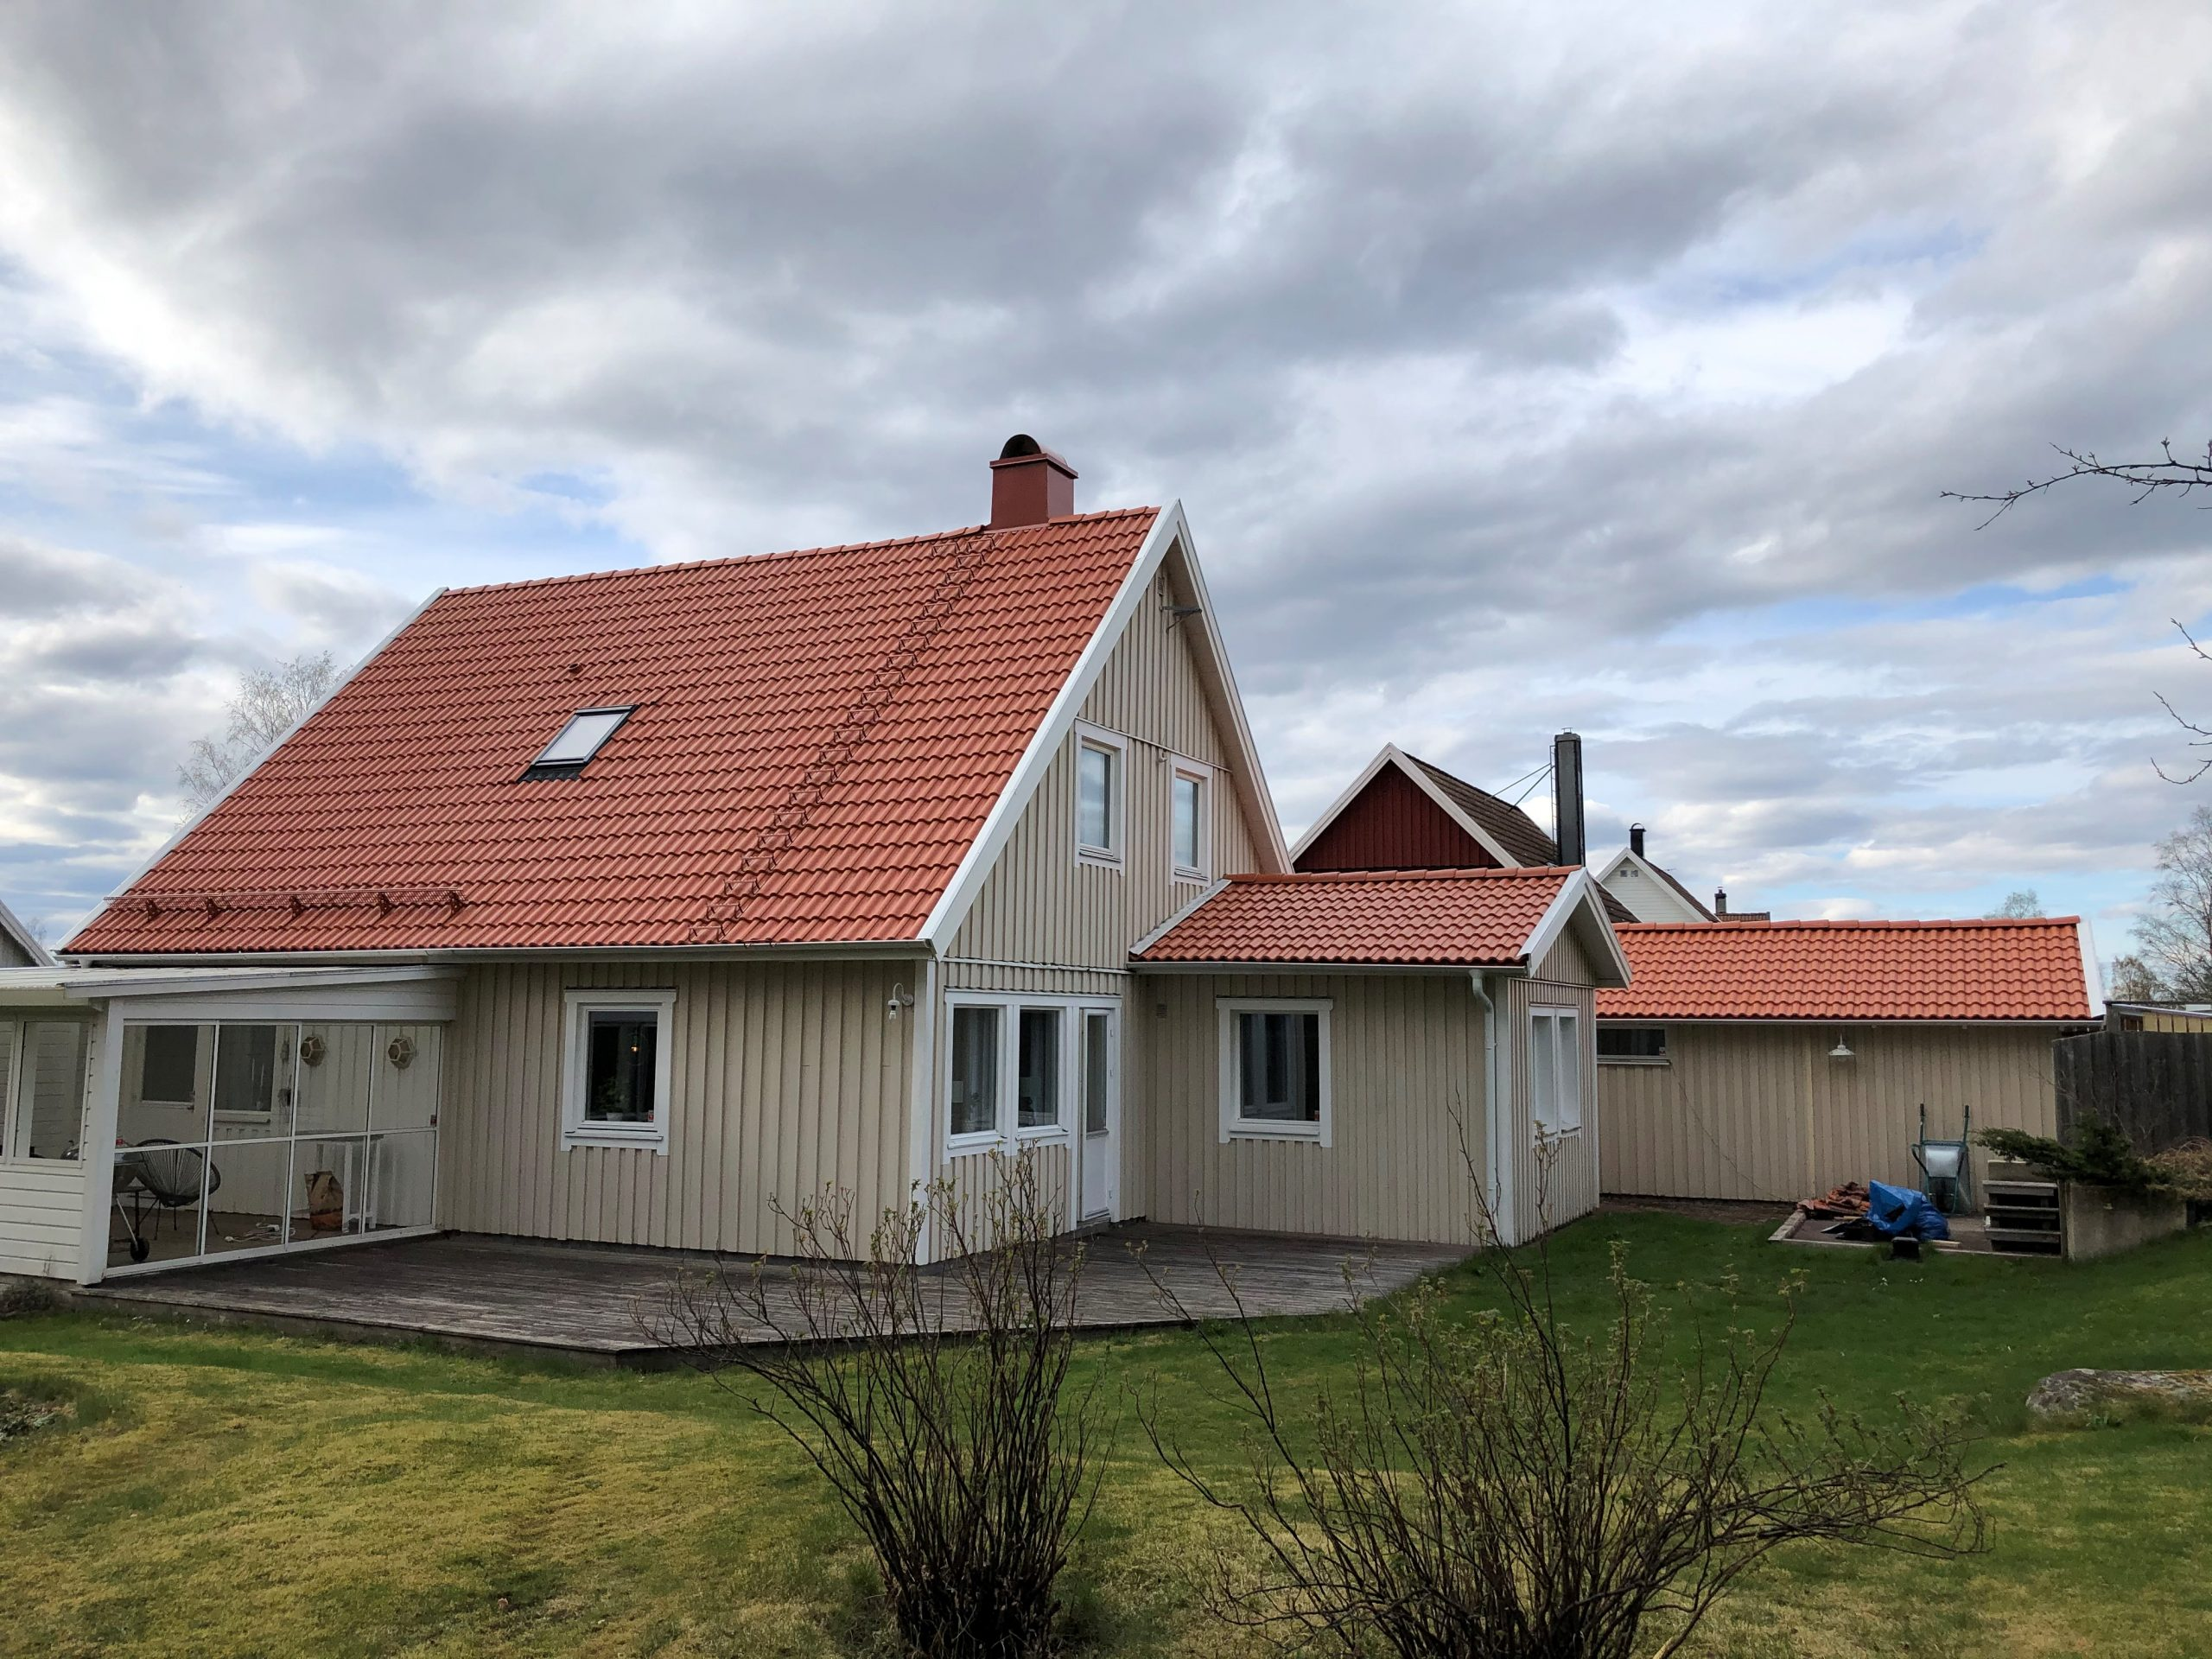 Takbyte, Ulricehamn. April 2020